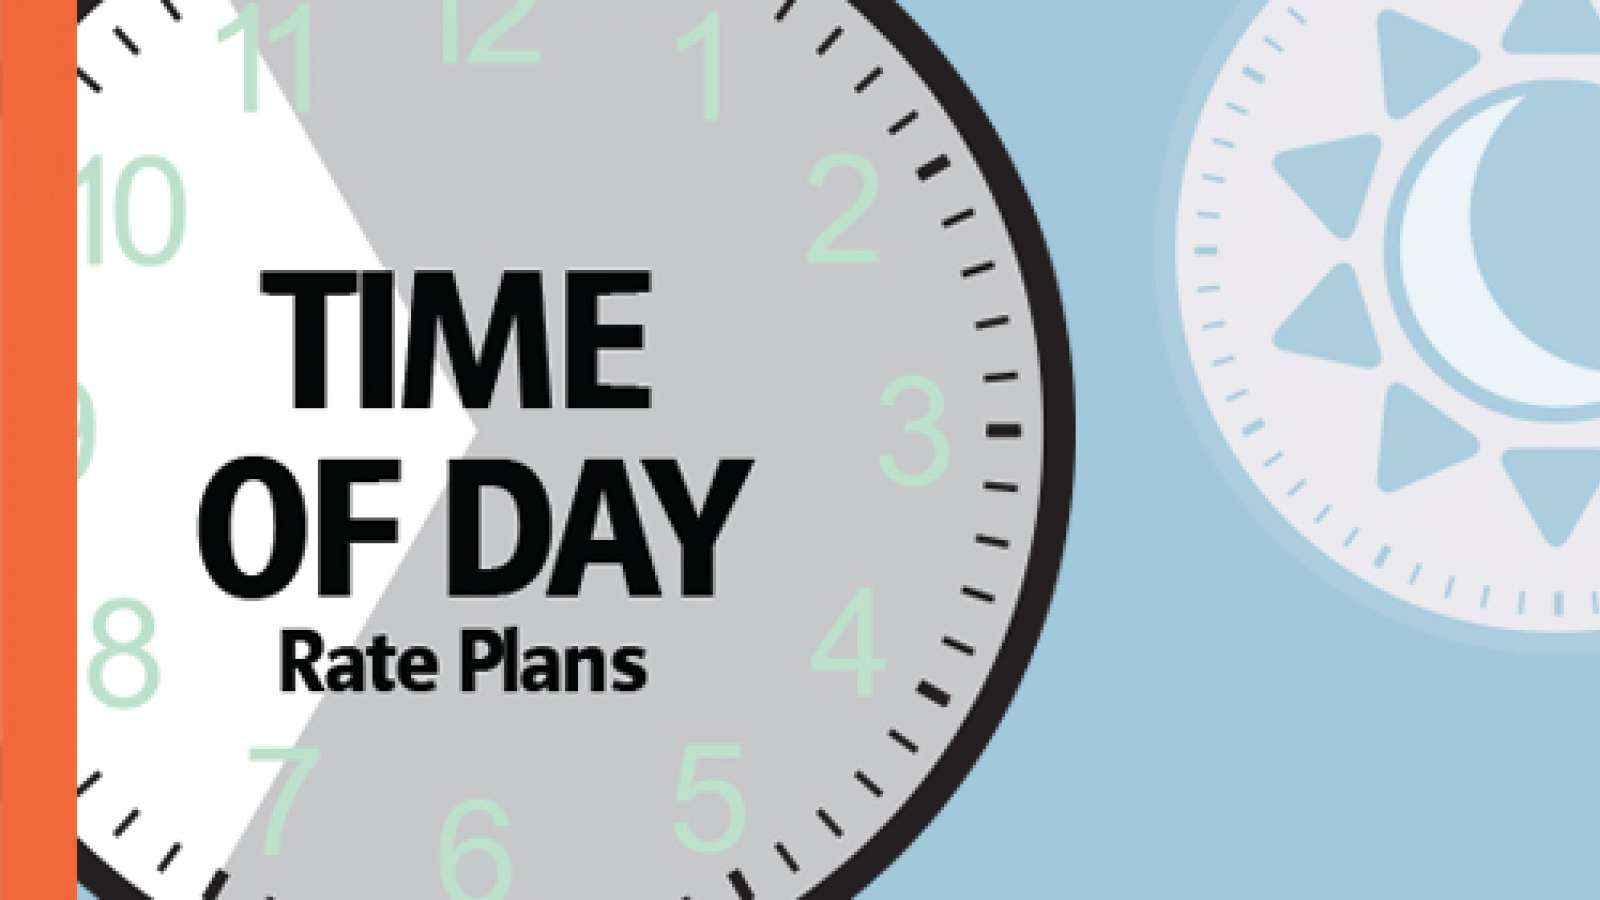 Time of day rate plans graphic clock and icons